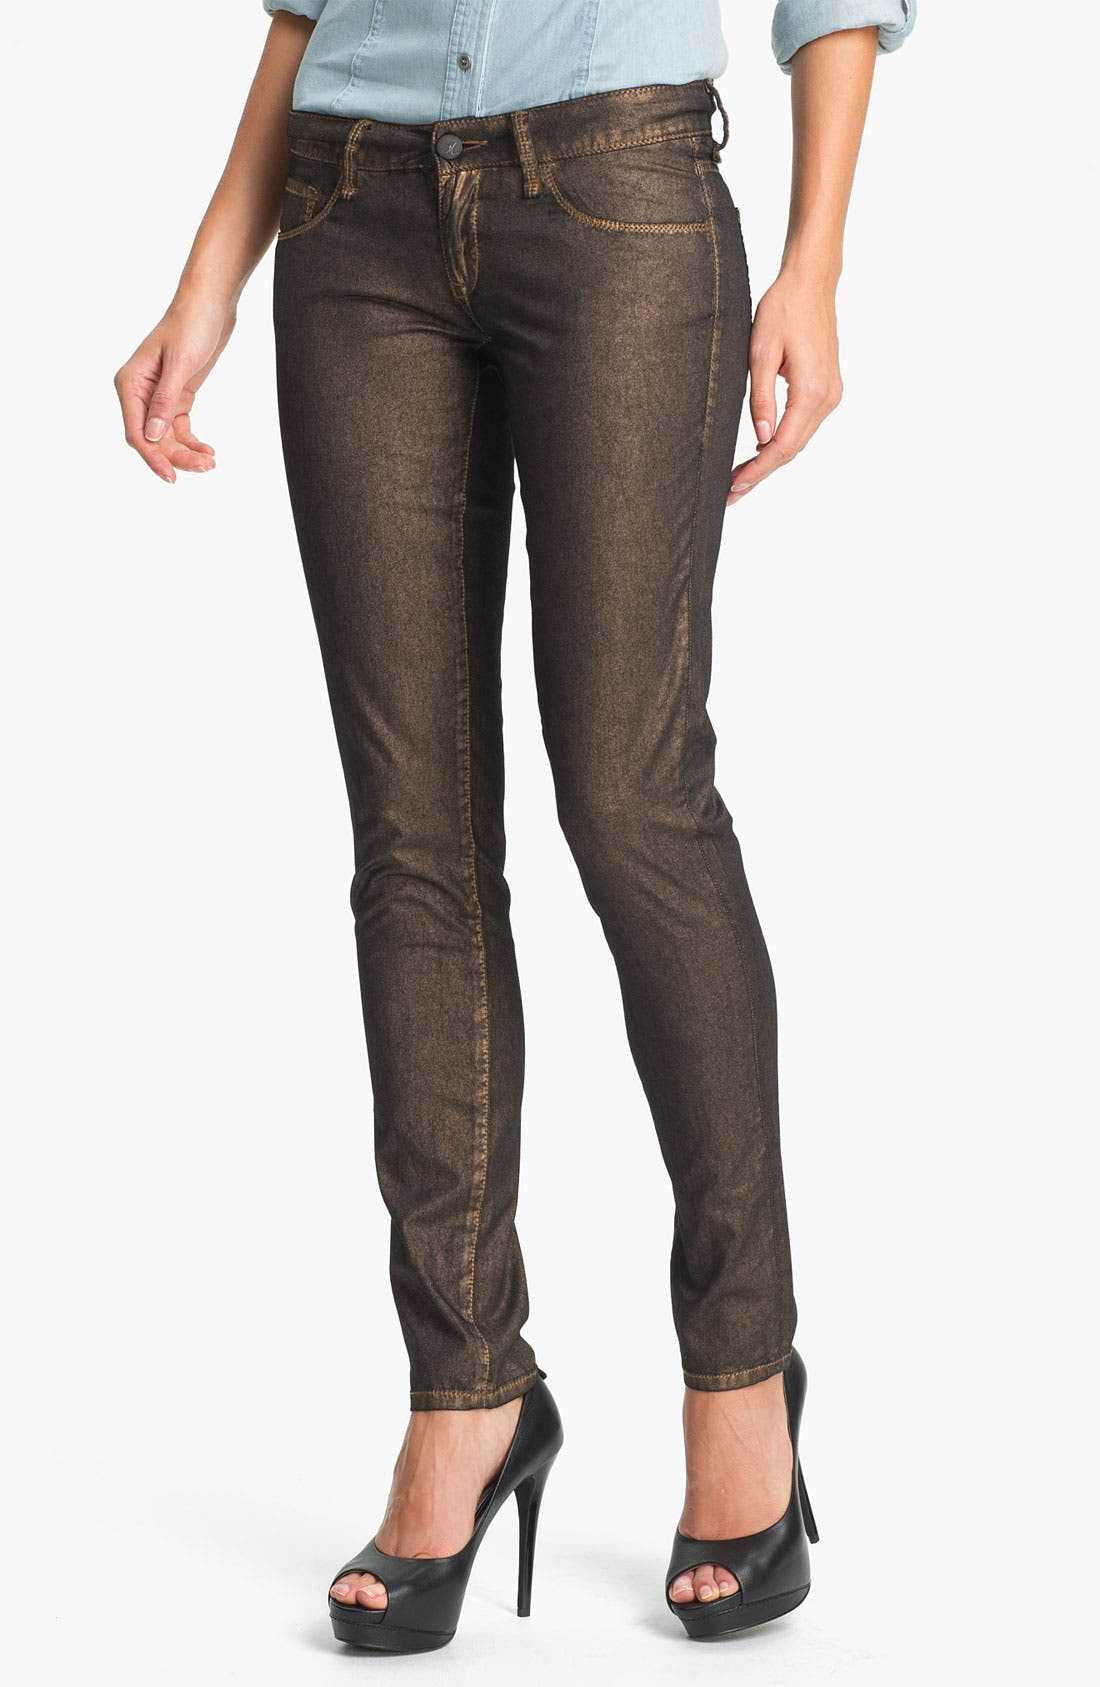 Main Image - Mavi Jeans 'Serena' Metallic Coated Skinny Jeans (Online Exclusive)